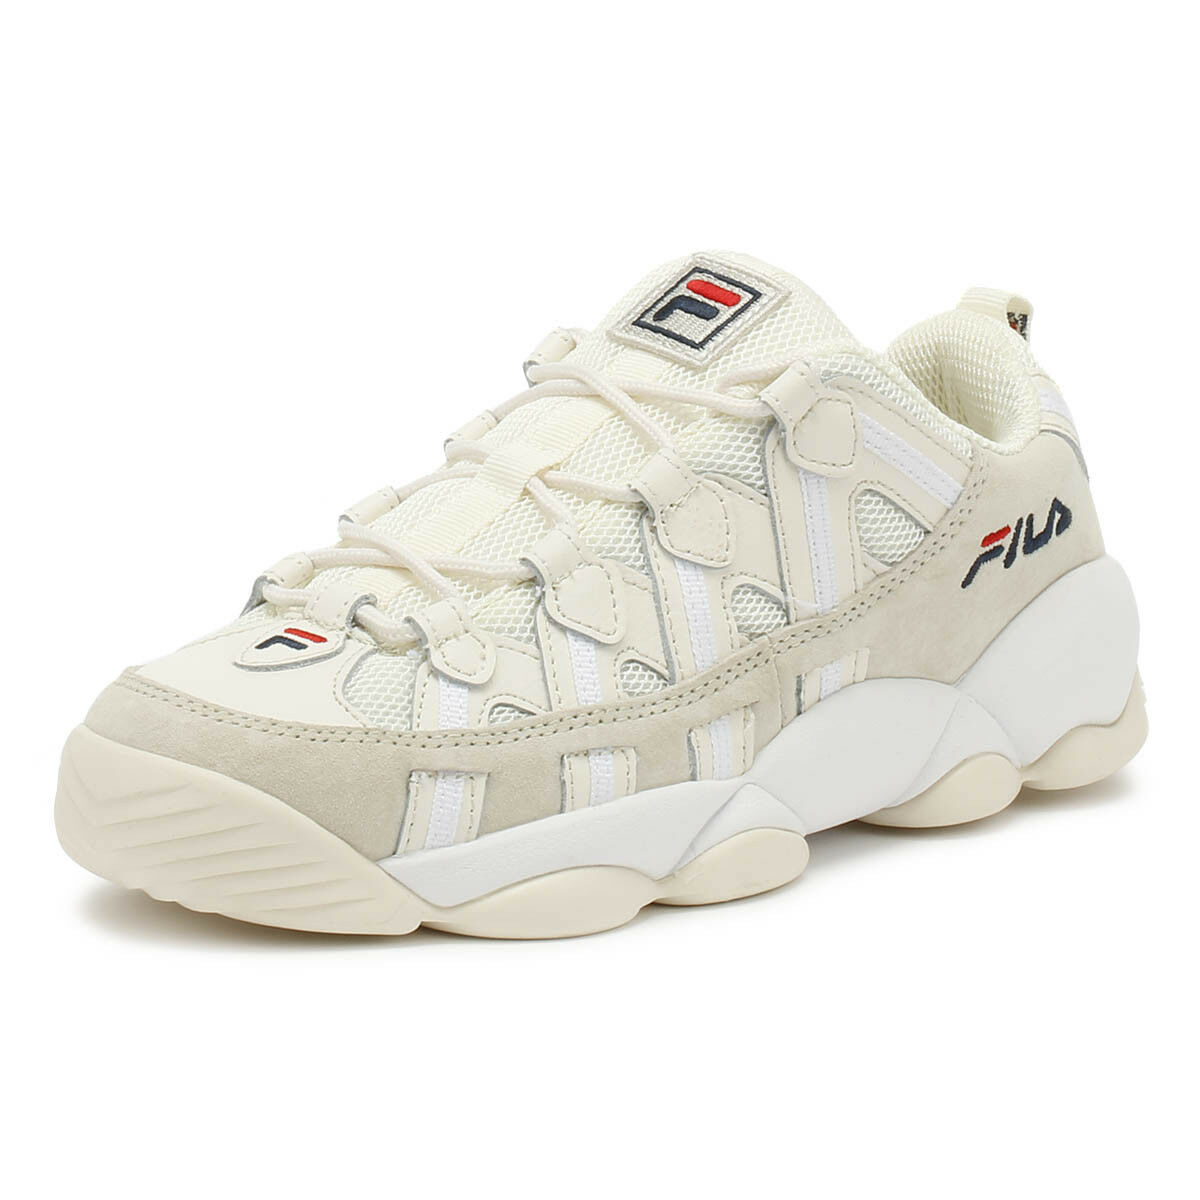 Fila Unisex Trainers Spaghetti Low White Lace Up Sport Casual Walking shoes